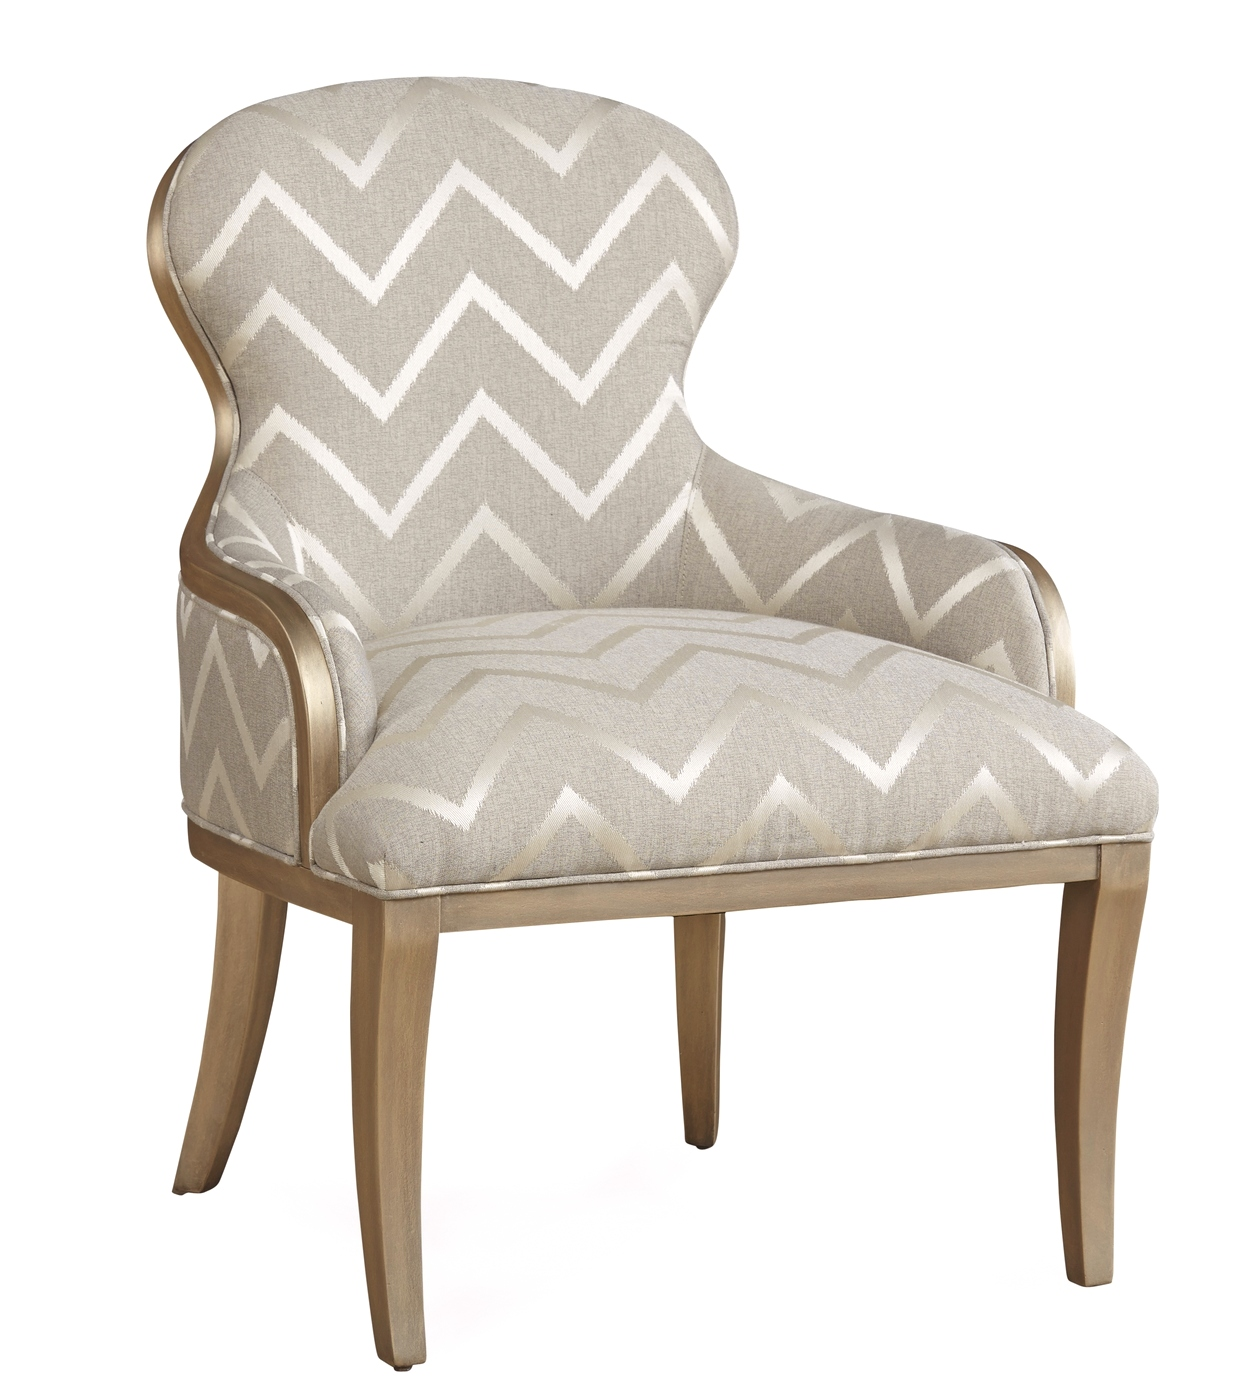 Grey And White French Accent Chair: The Foundry French Chevron Accent Chair In Grey And Champagne